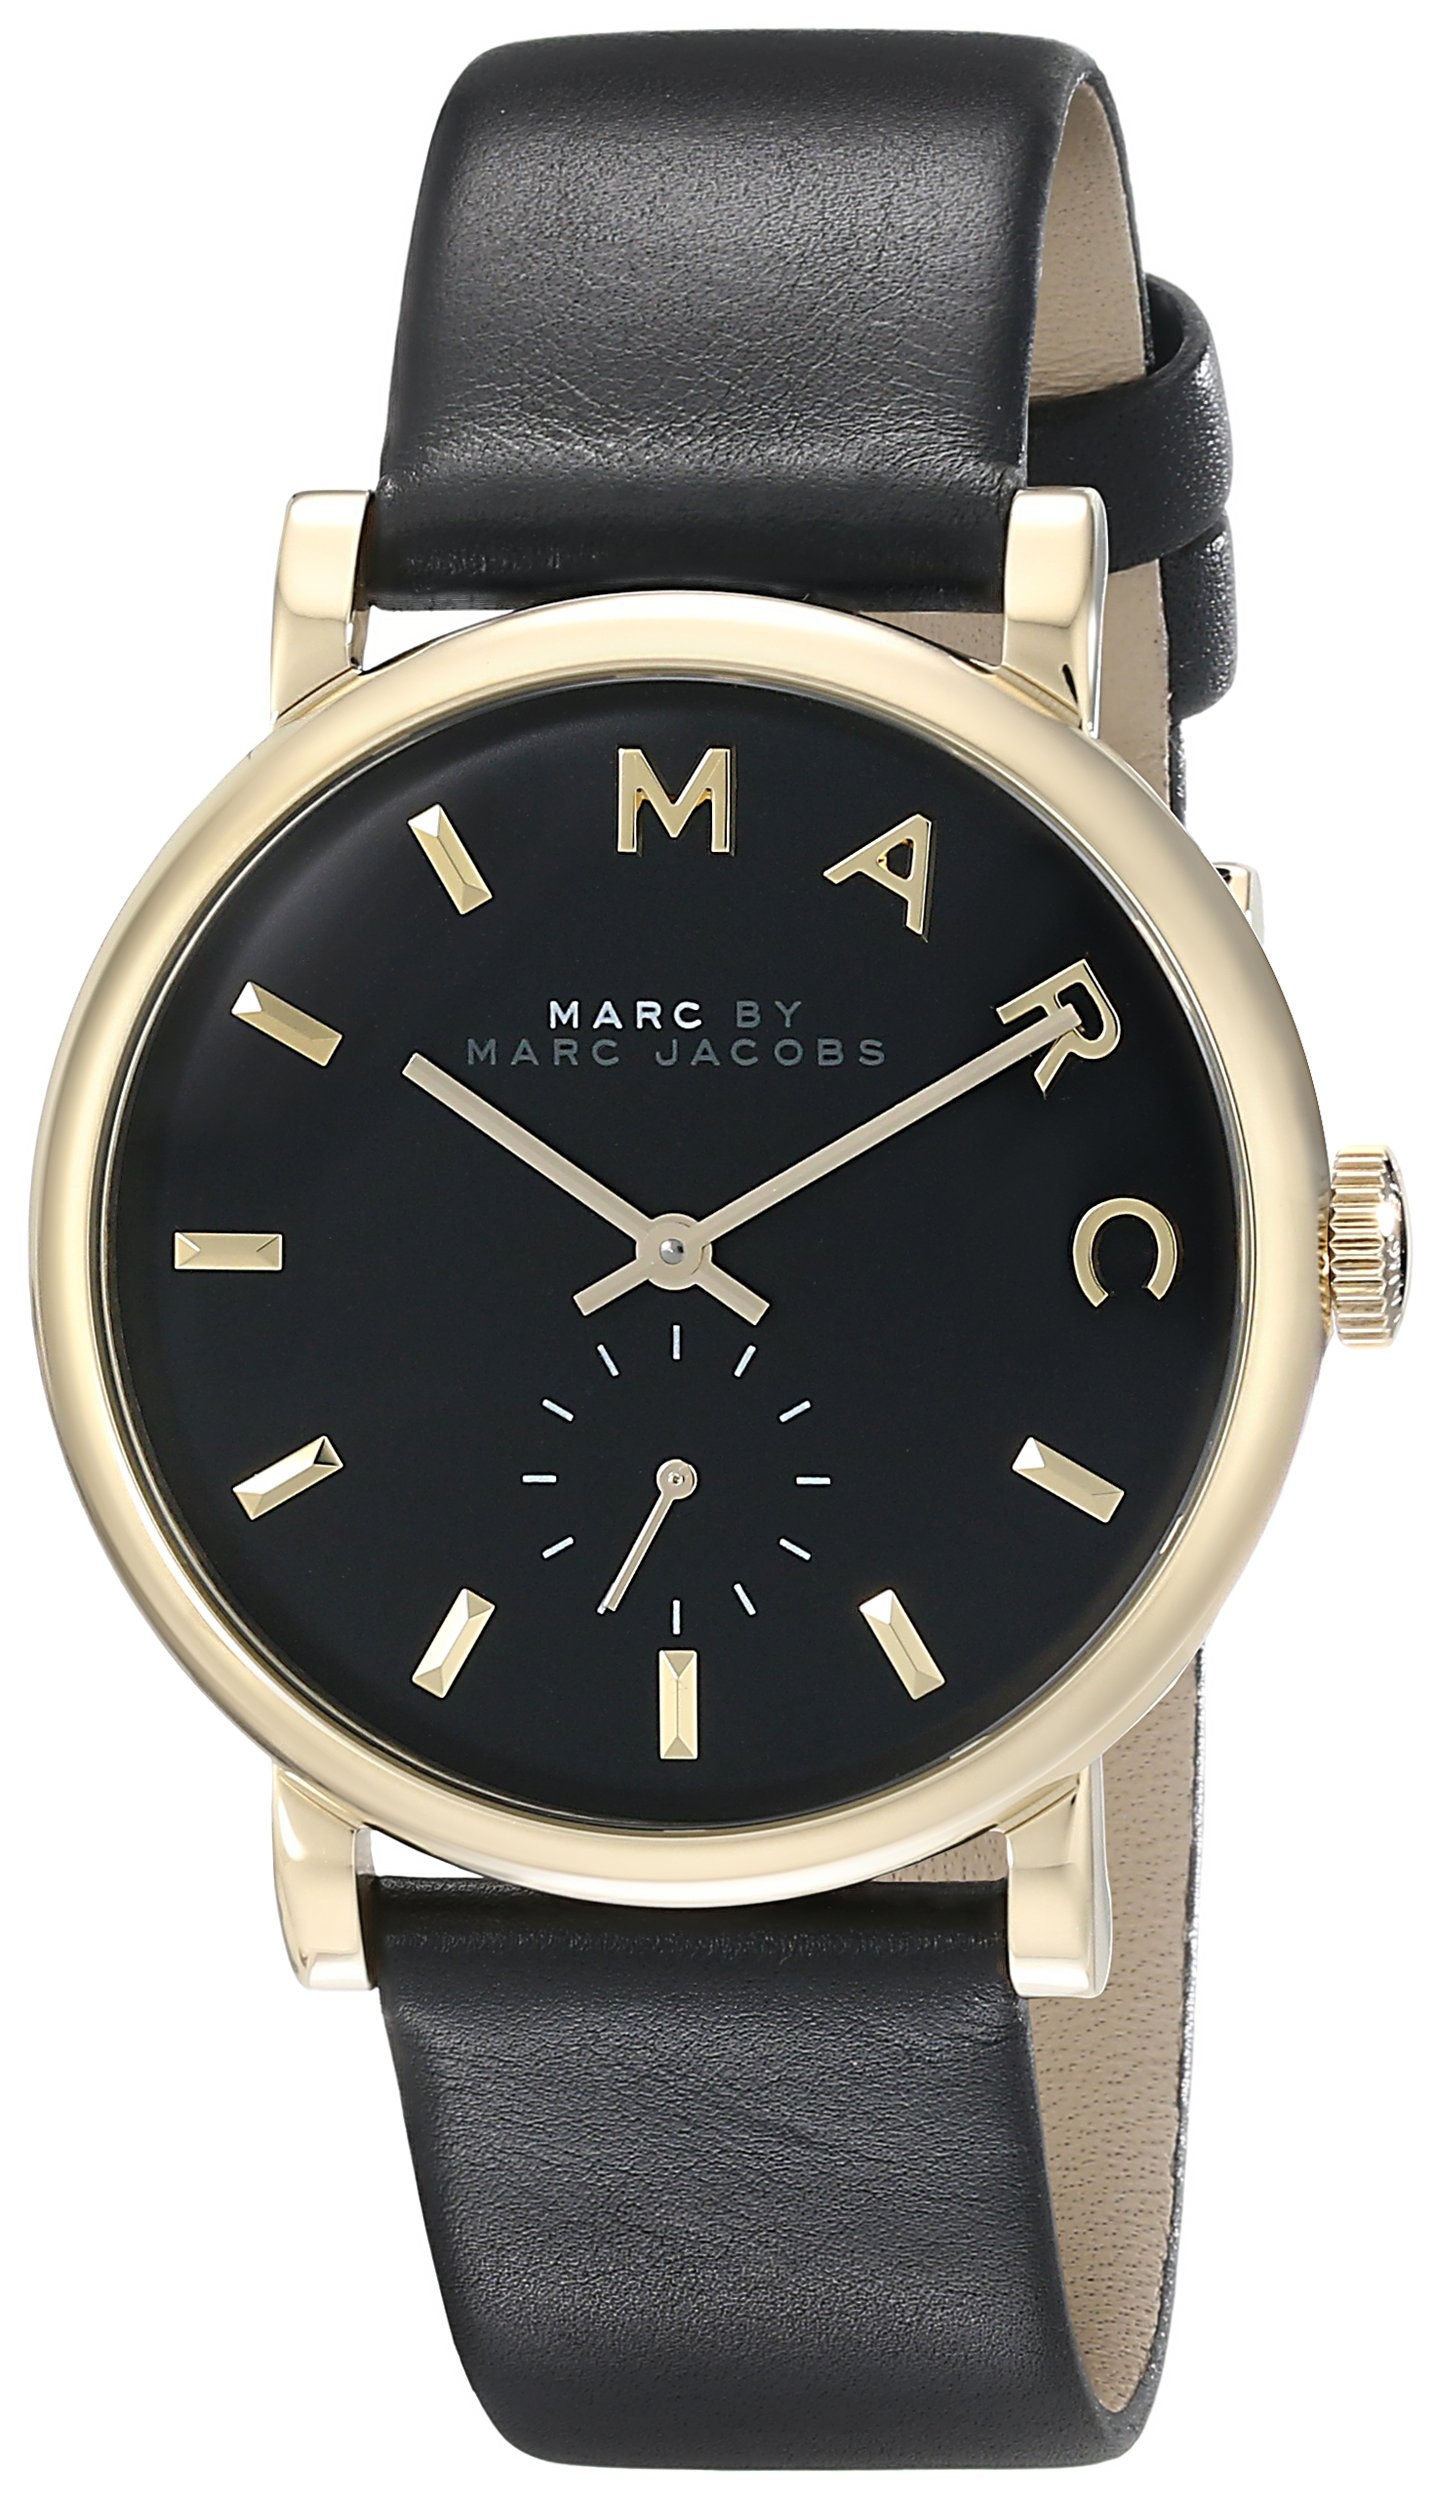 Marc by Marc Jacobs Women's MBM1269 Baker Gold-Tone Stainless Steel Watch with Black Leather Band